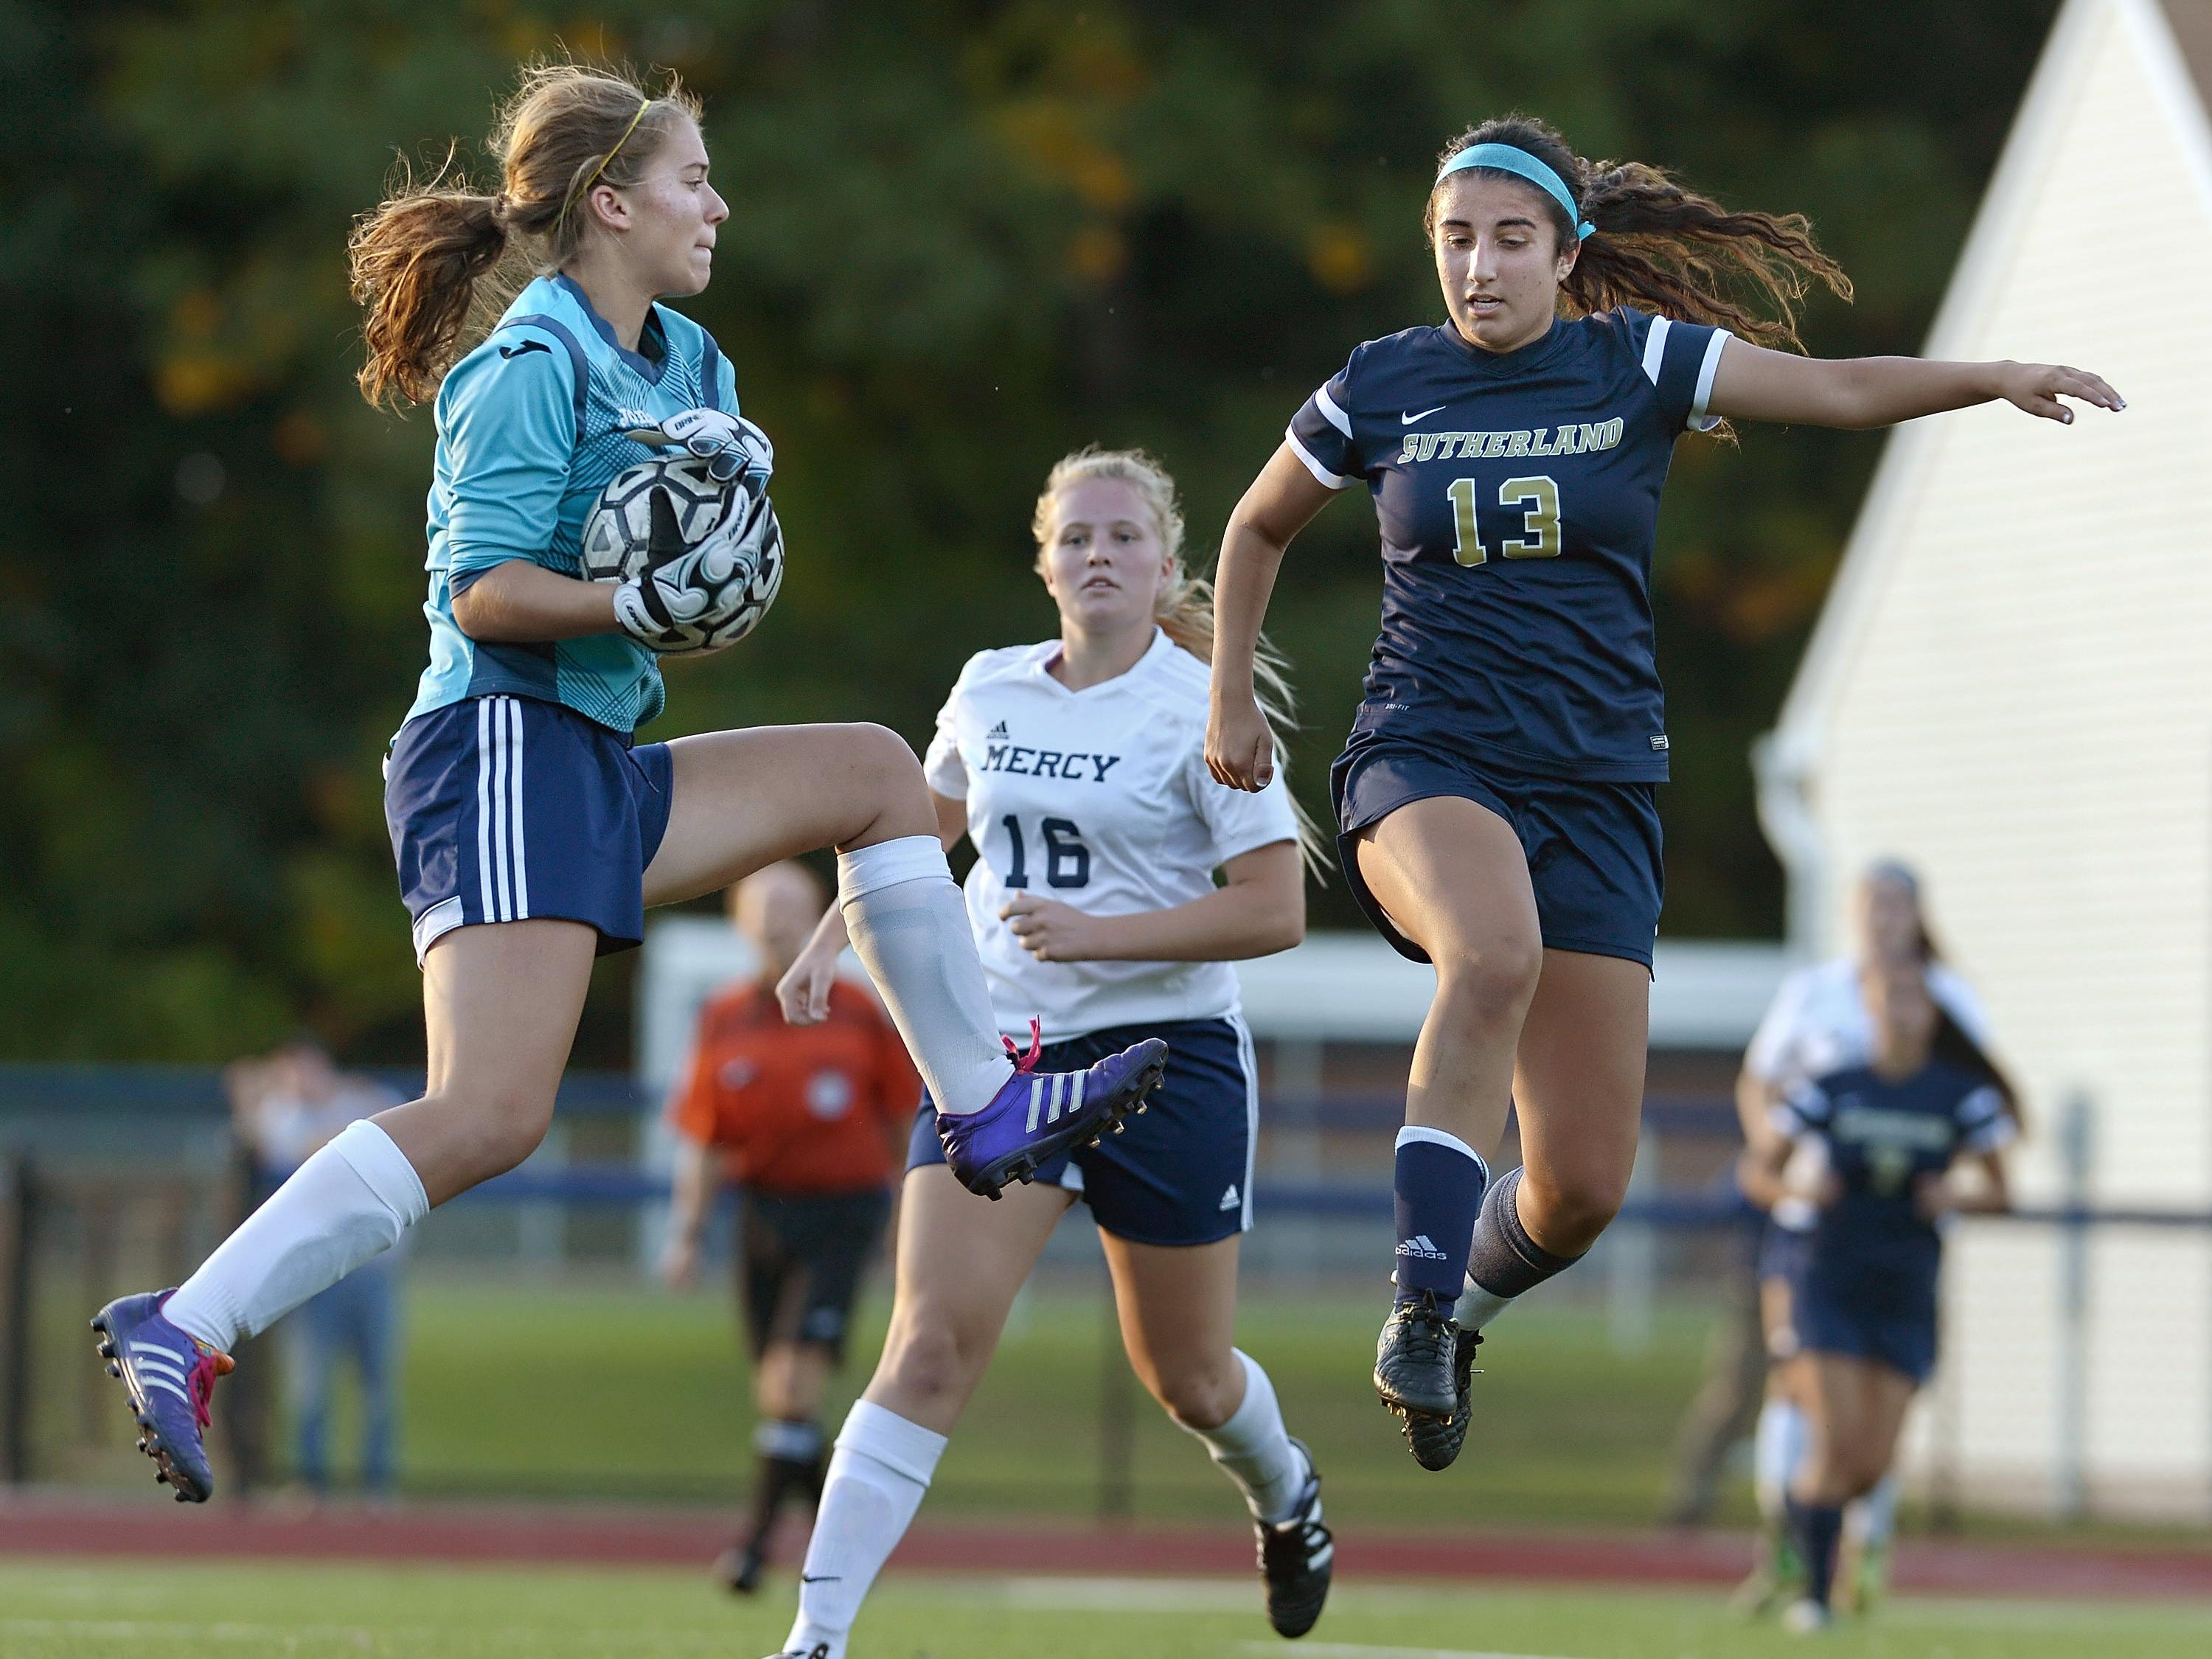 Mercy goalie Madeline Pizzo, left, makes a save with Pittsford Sutherland's Guliana Vasile approaching.